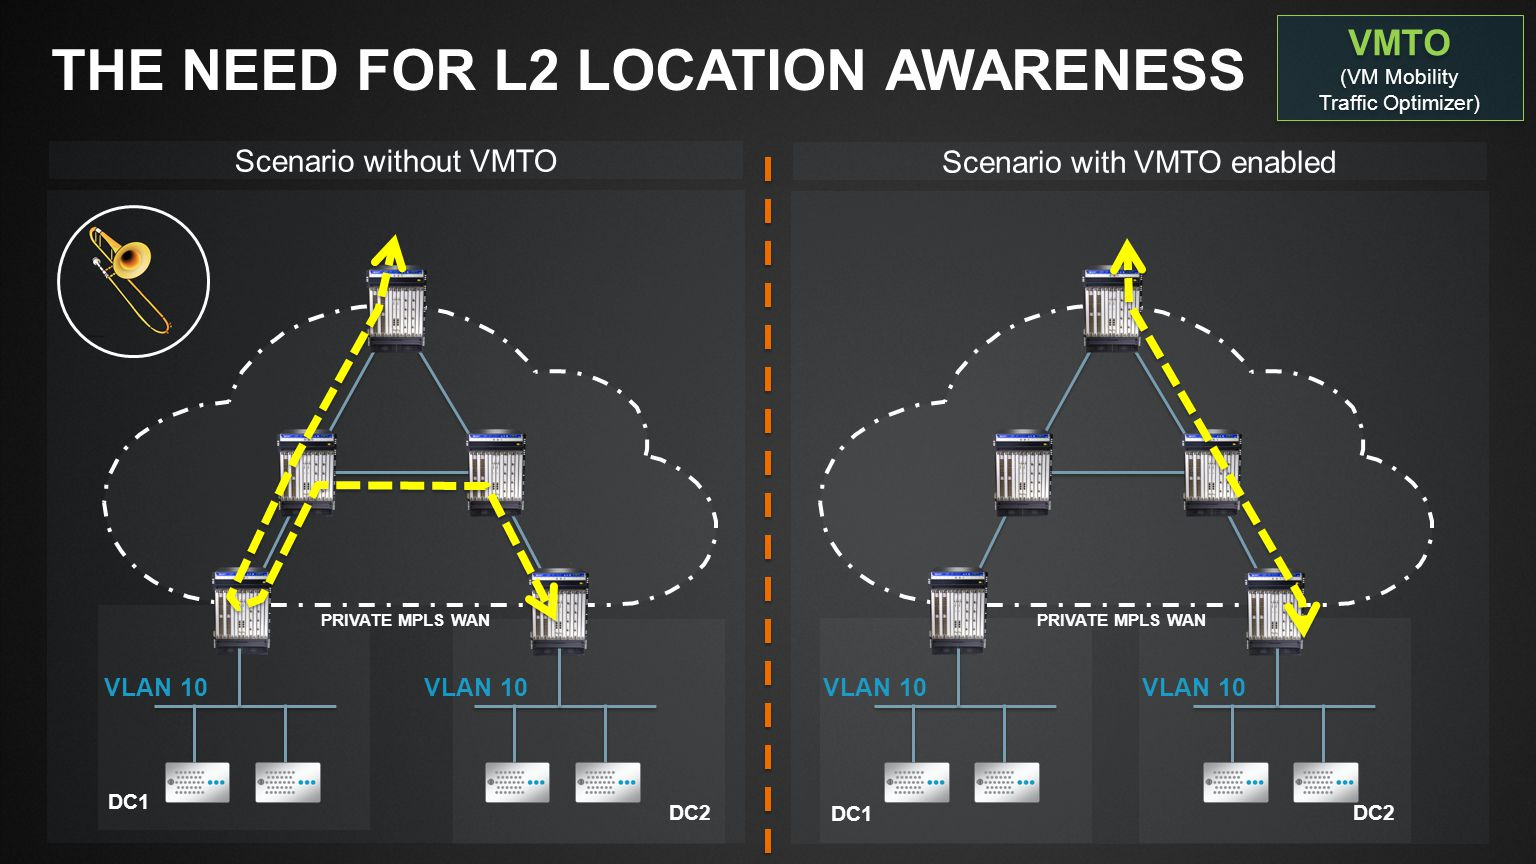 Scenario with VMTO enabled